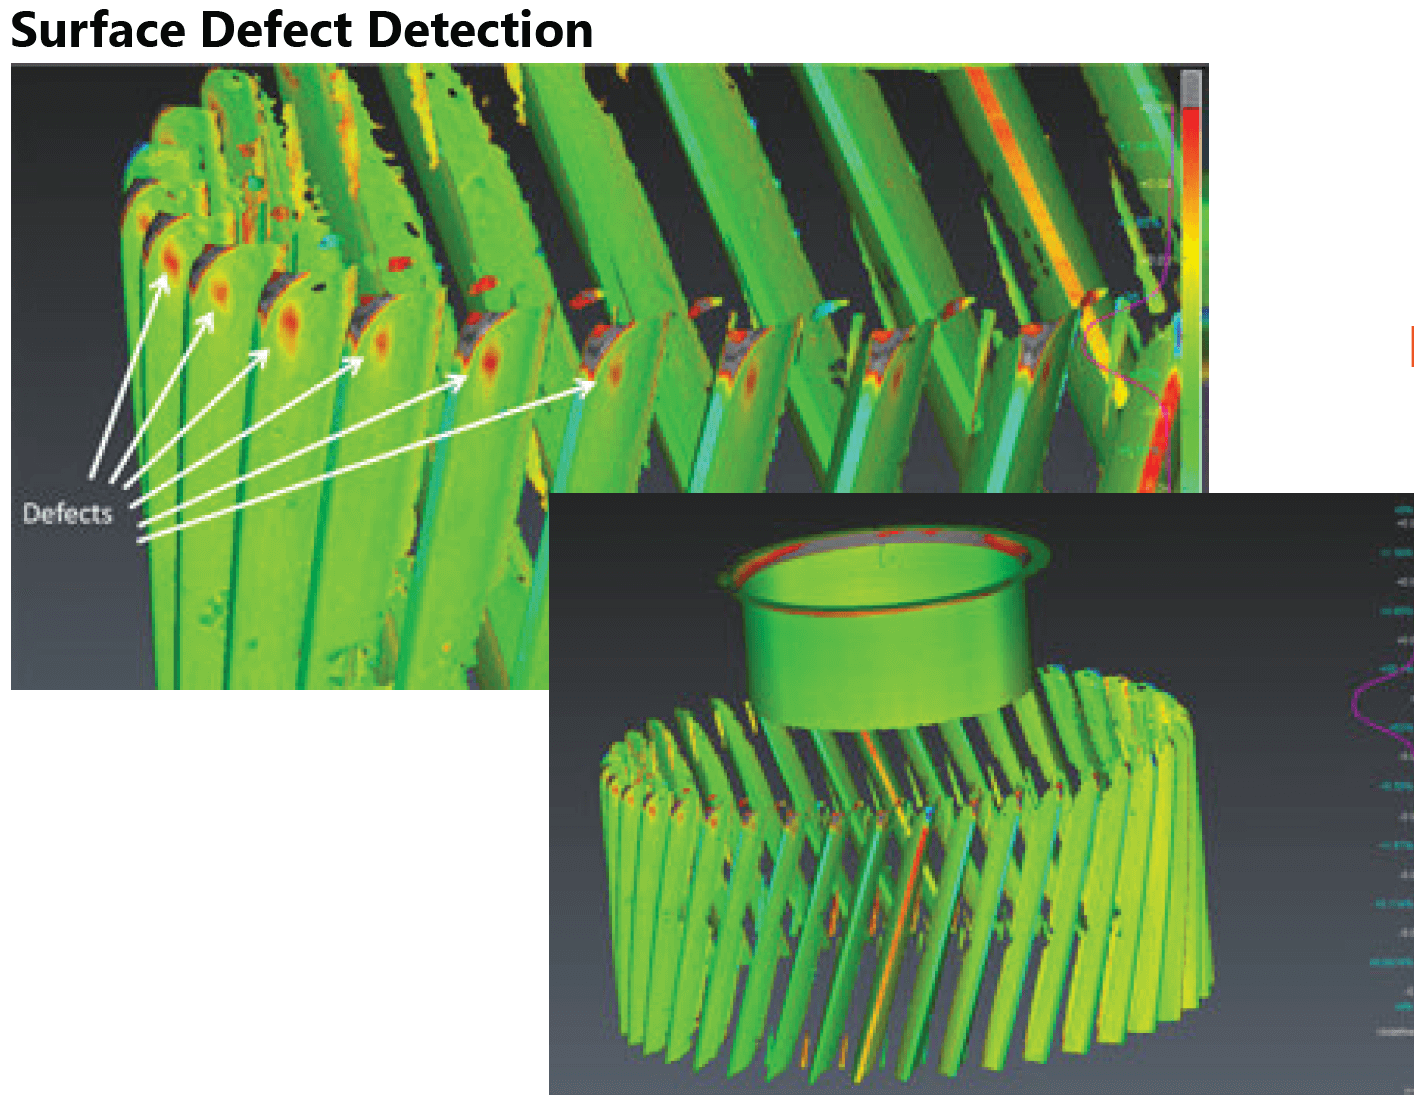 Zerotouch - Gear defect detection